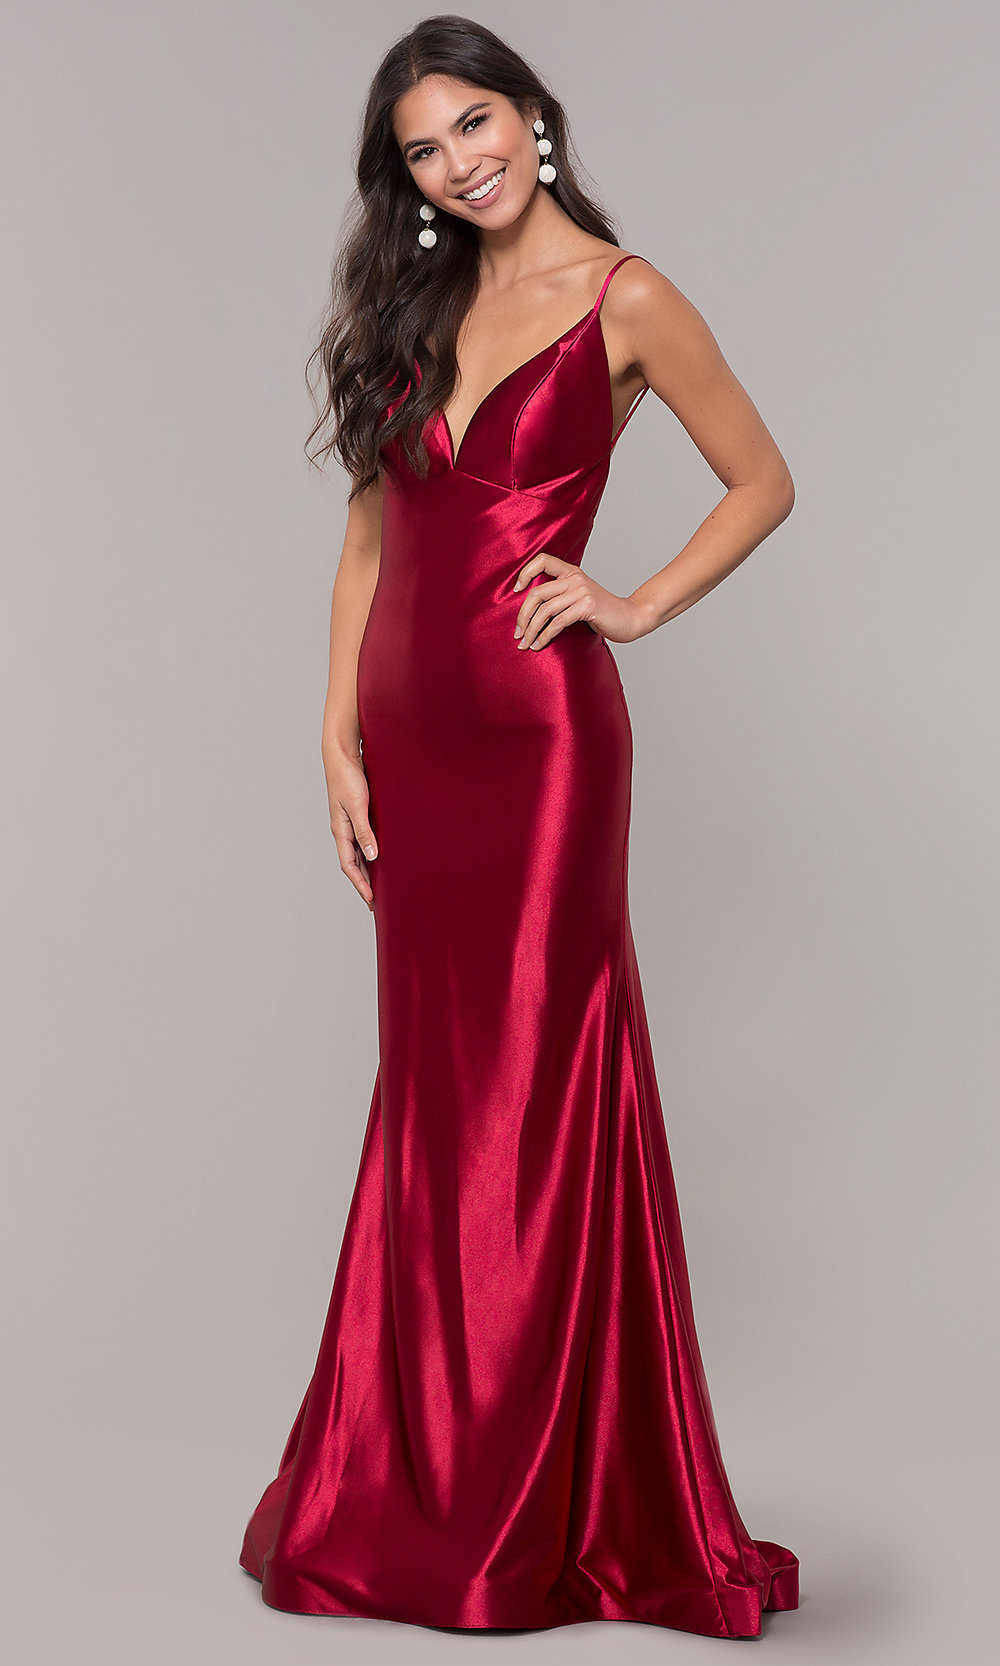 Looking for Vintage Prom Dresses